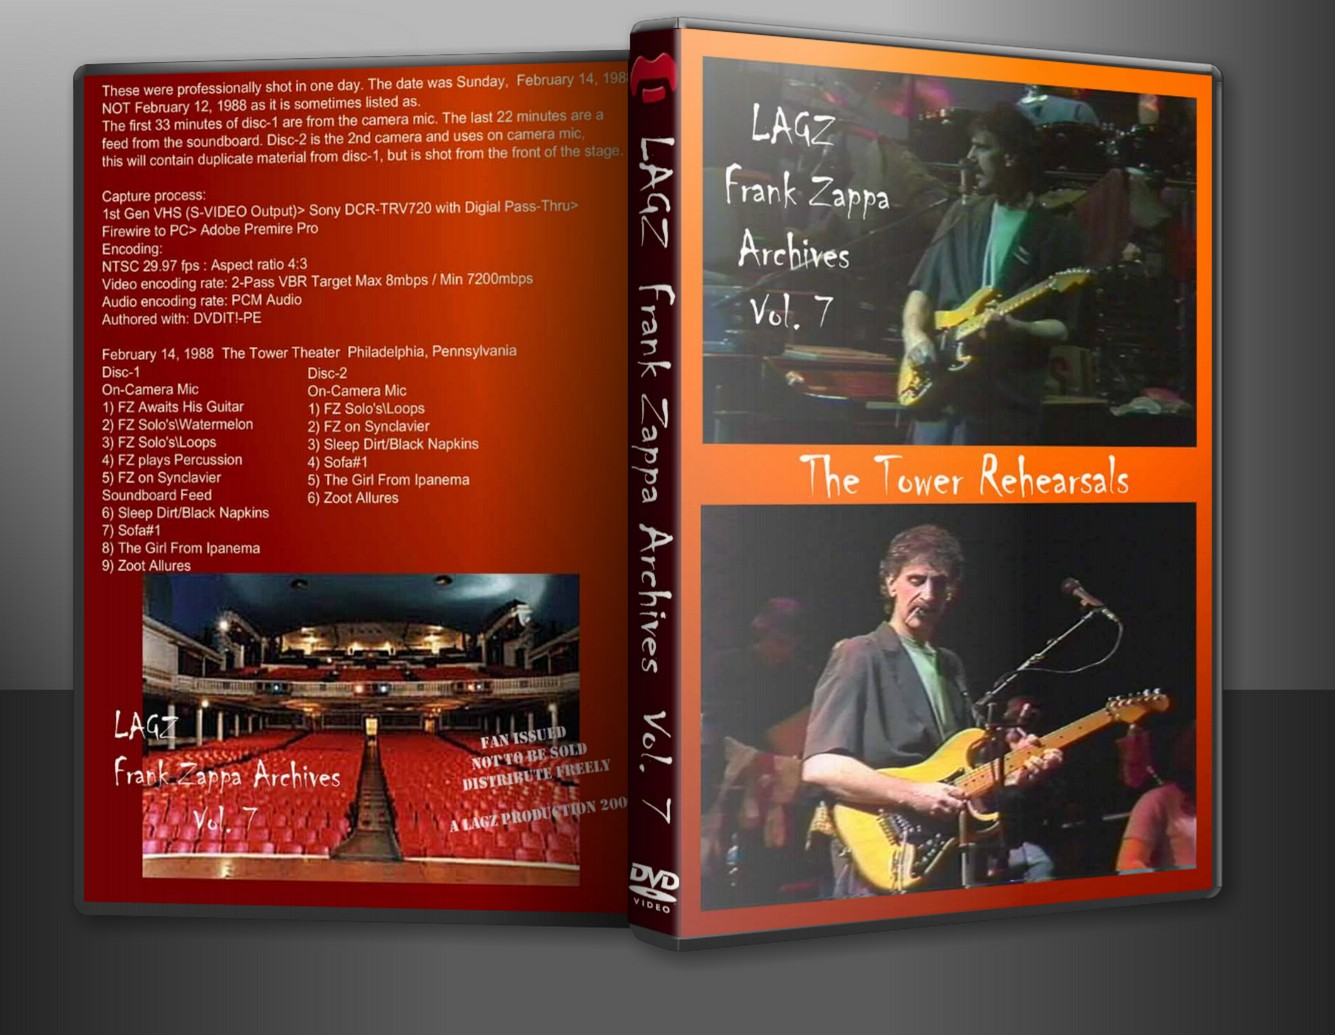 DVD Concert Frank Zappa 1988 02 14 Tower Theatre Upper  : DVDCoverForShow FrankZappa 1988 02 14TowerTheatre252CUpperDarby252CPA252CUS from dvdconcertth.blogspot.com size 1335 x 1035 jpeg 254kB